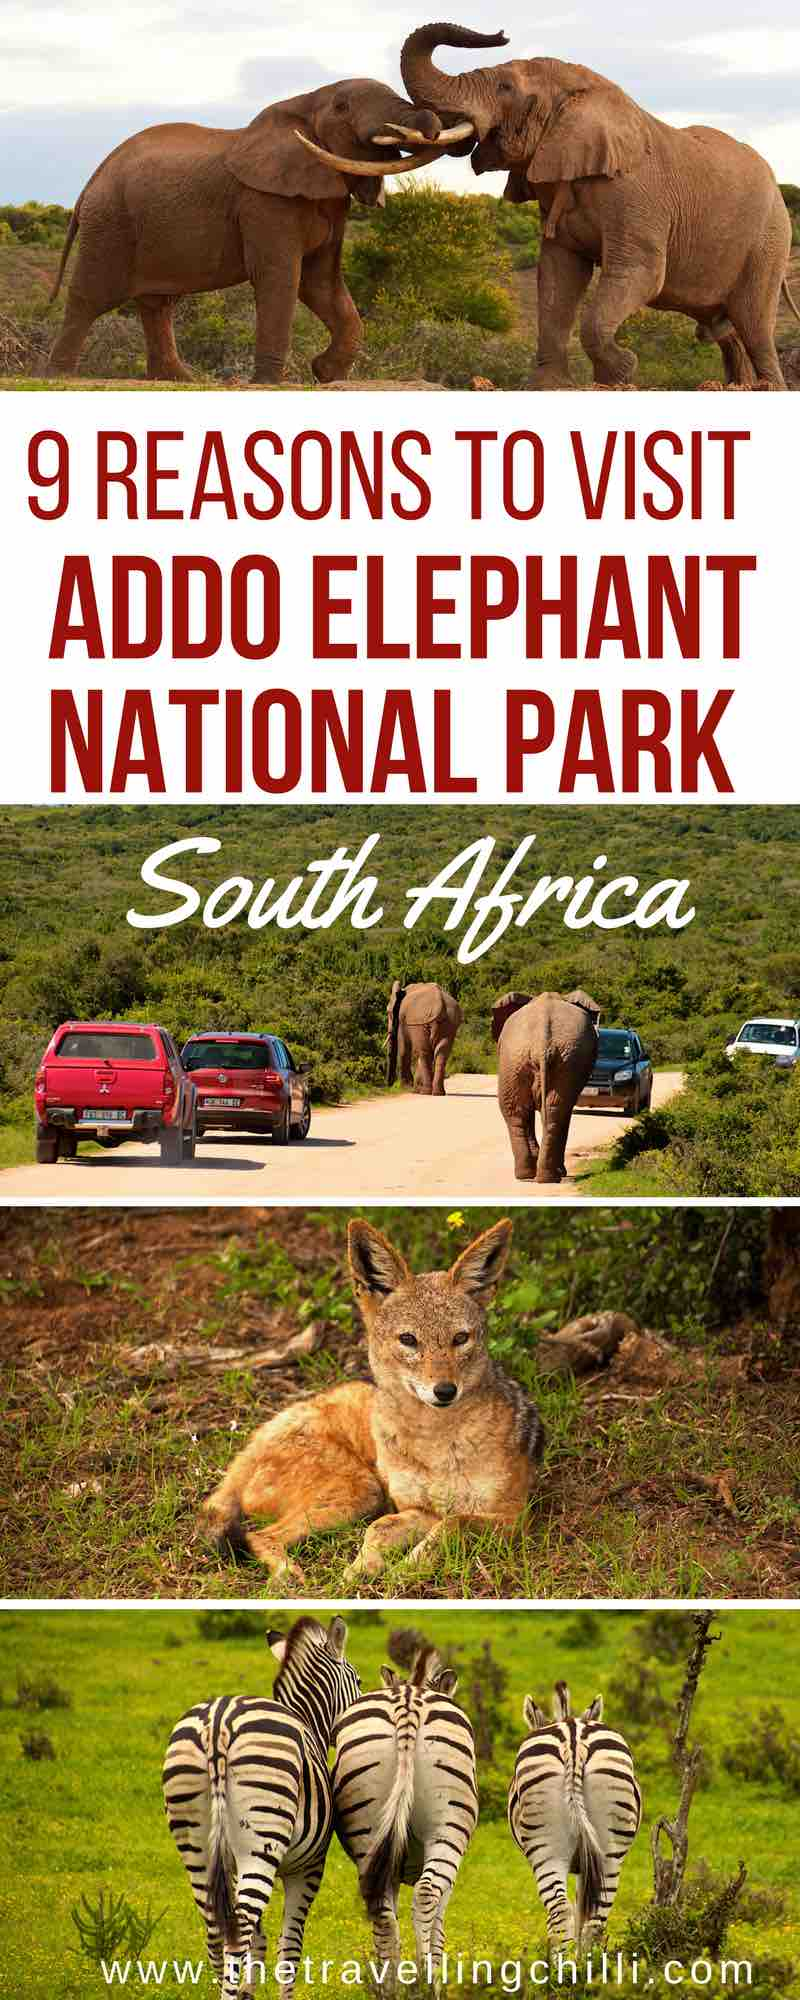 Best reasons to visit Addo Elephant park in South Africa. Addo park is close to Port Elizabeth as part of the Garden Route in South Africa. Addo national park is the best place to see the African elephant and of course many other wildlife in South Africa | safari in Addo Elephant park